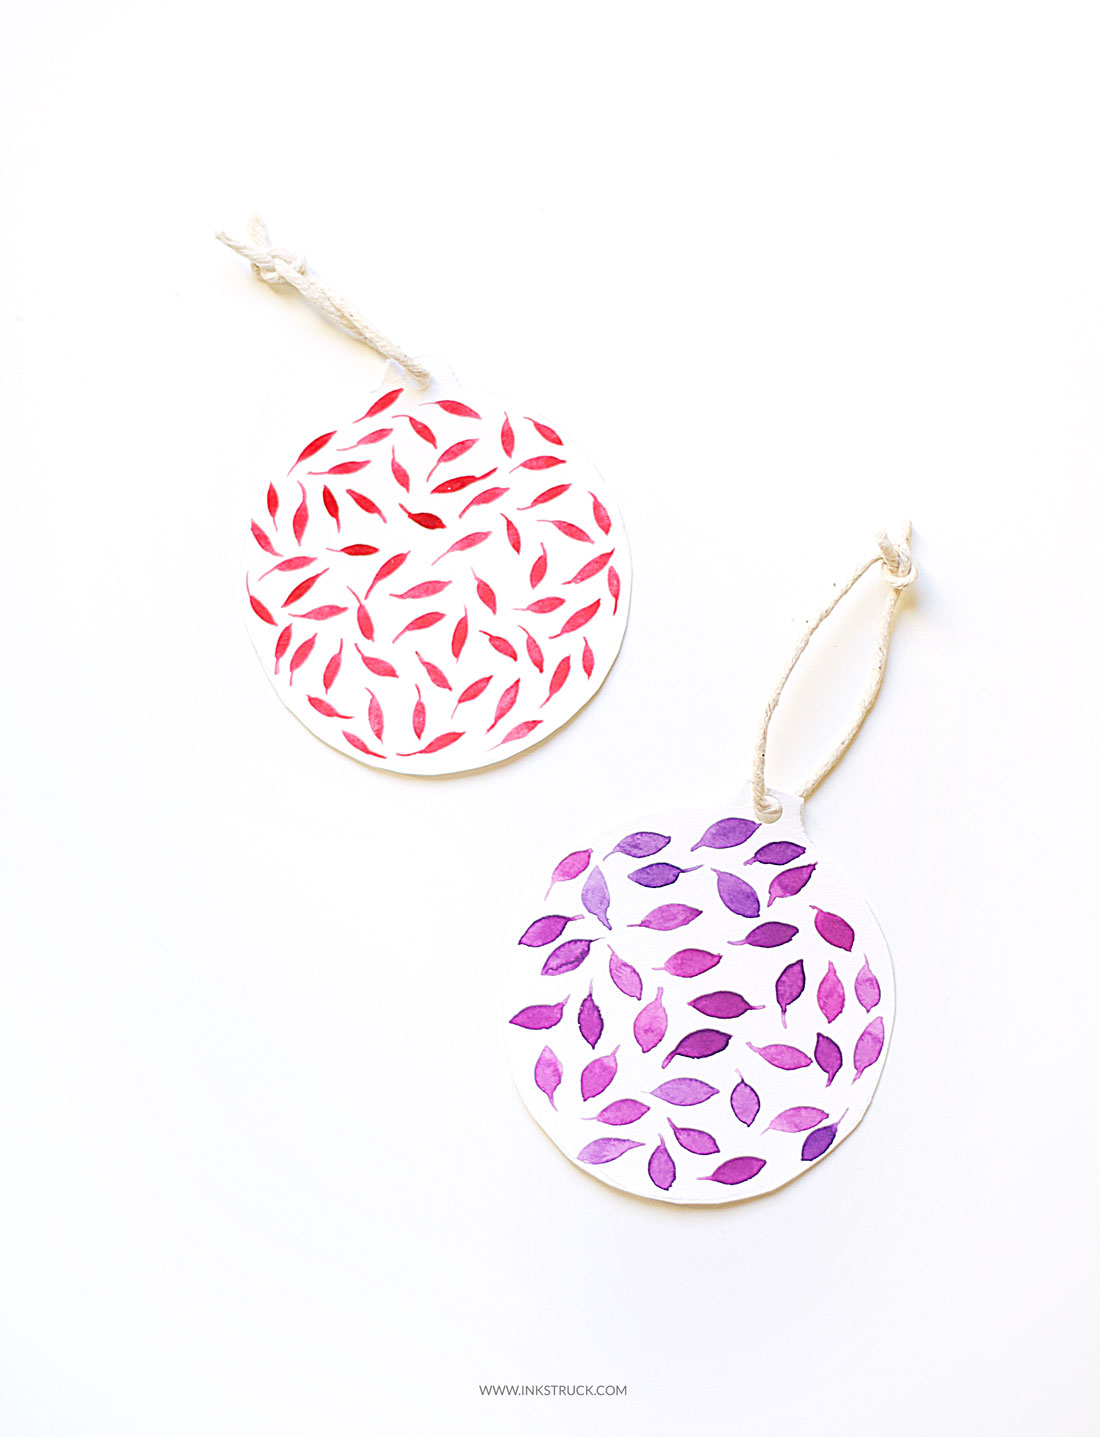 Learn how to make DIY paper christmas ornaments in this easy to follow tutorial by Zakkiya Hamza of Inkstruck Studio.